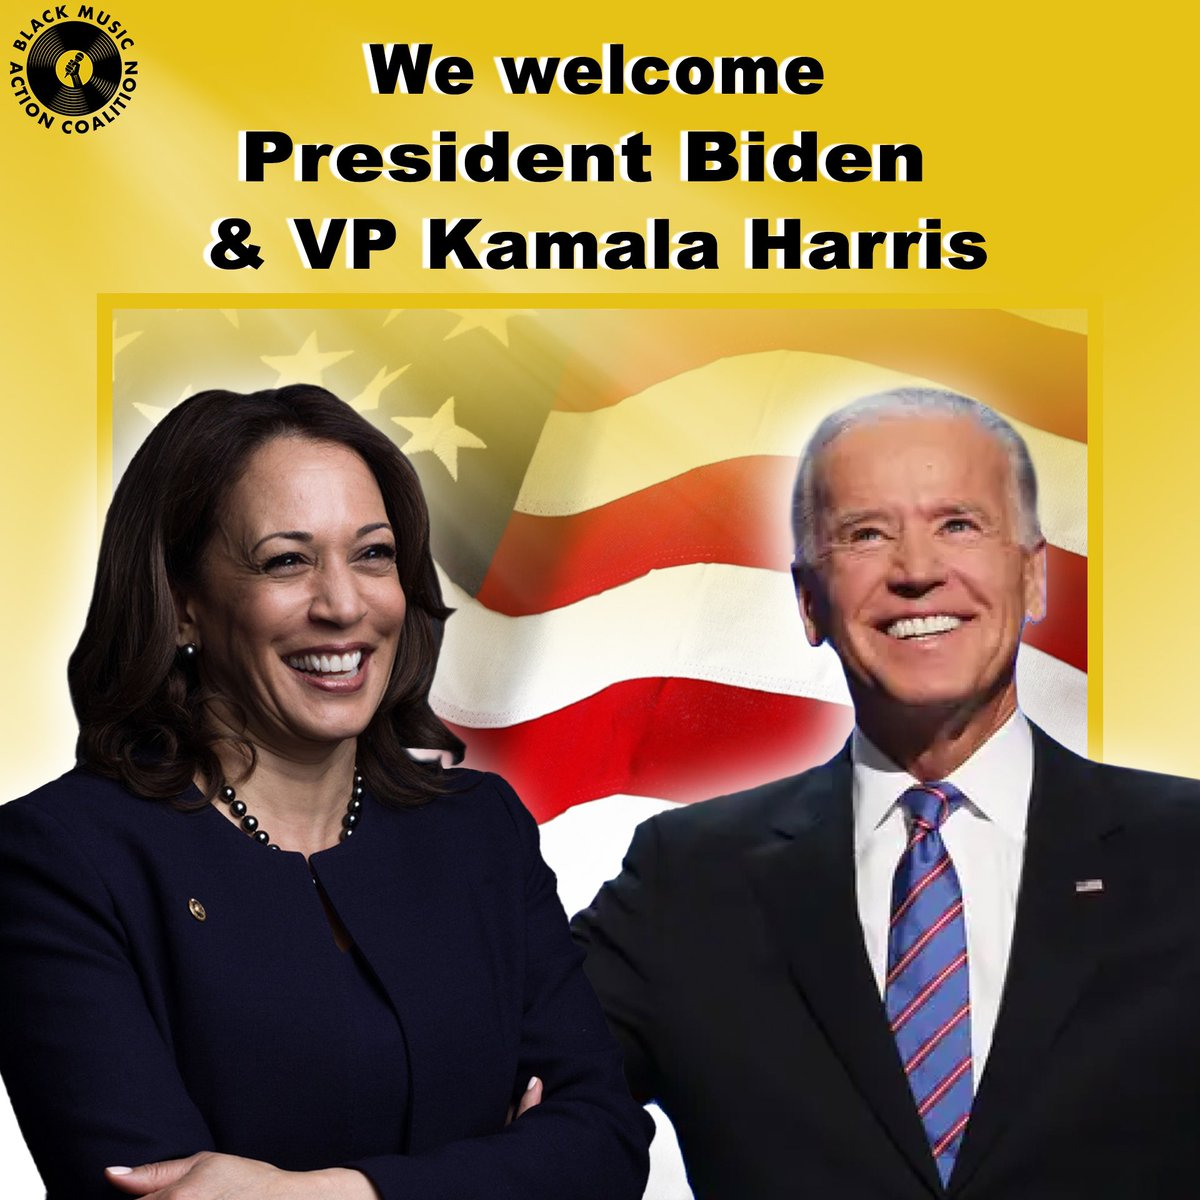 We welcome the New President and Vice President of The United States of America! @JoeBiden and @KamalaHarris. #BMAC